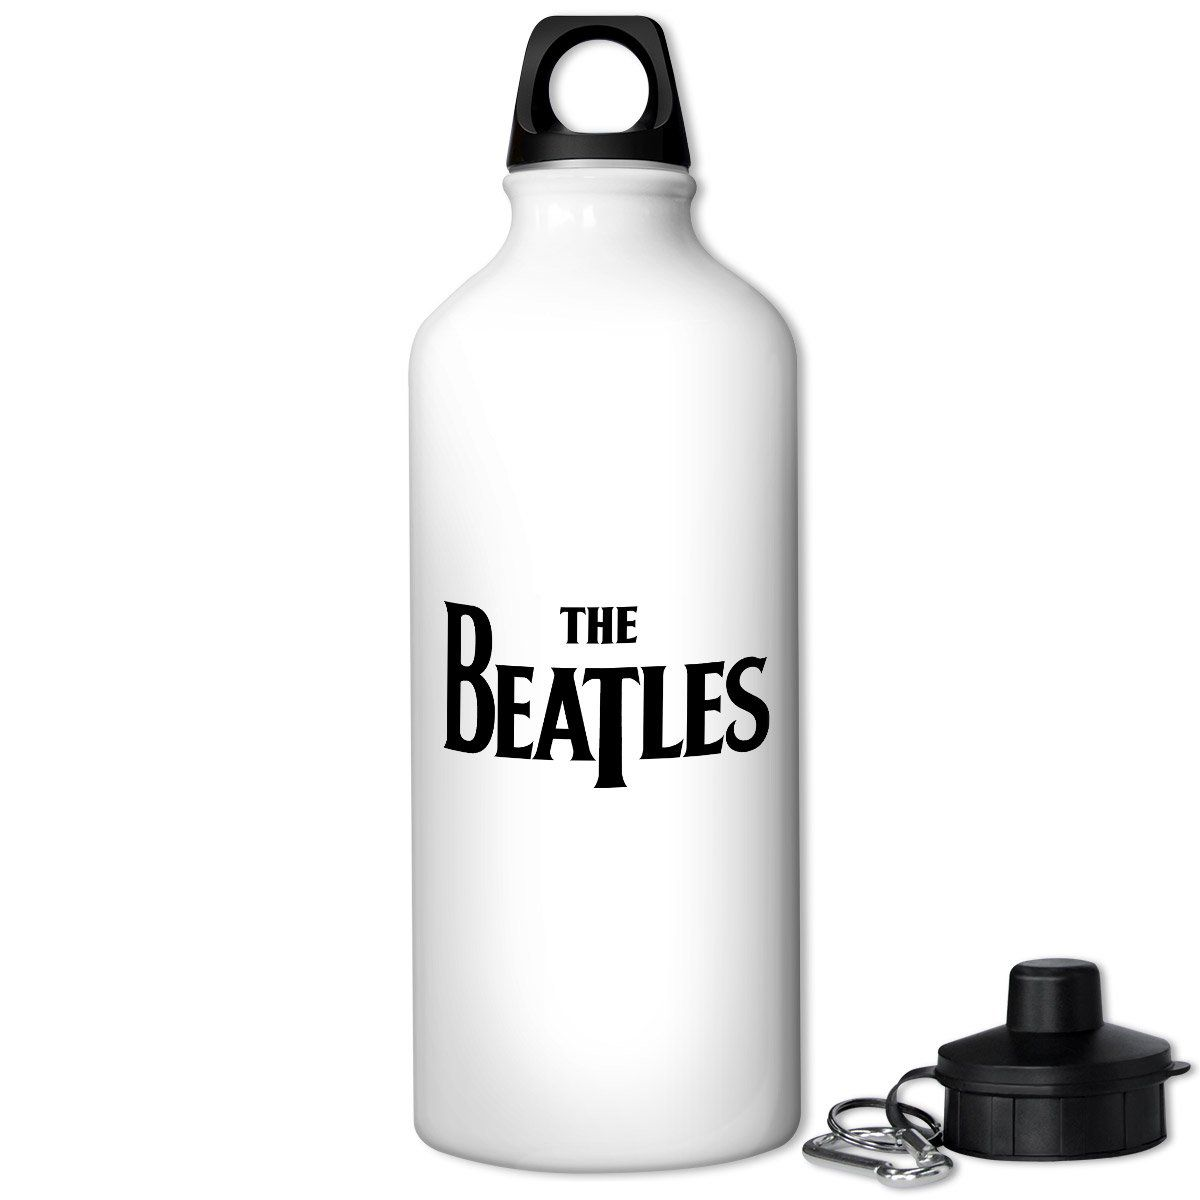 Squeeze The Beatles Umbrella Colors  - bandUP Store Marketplace